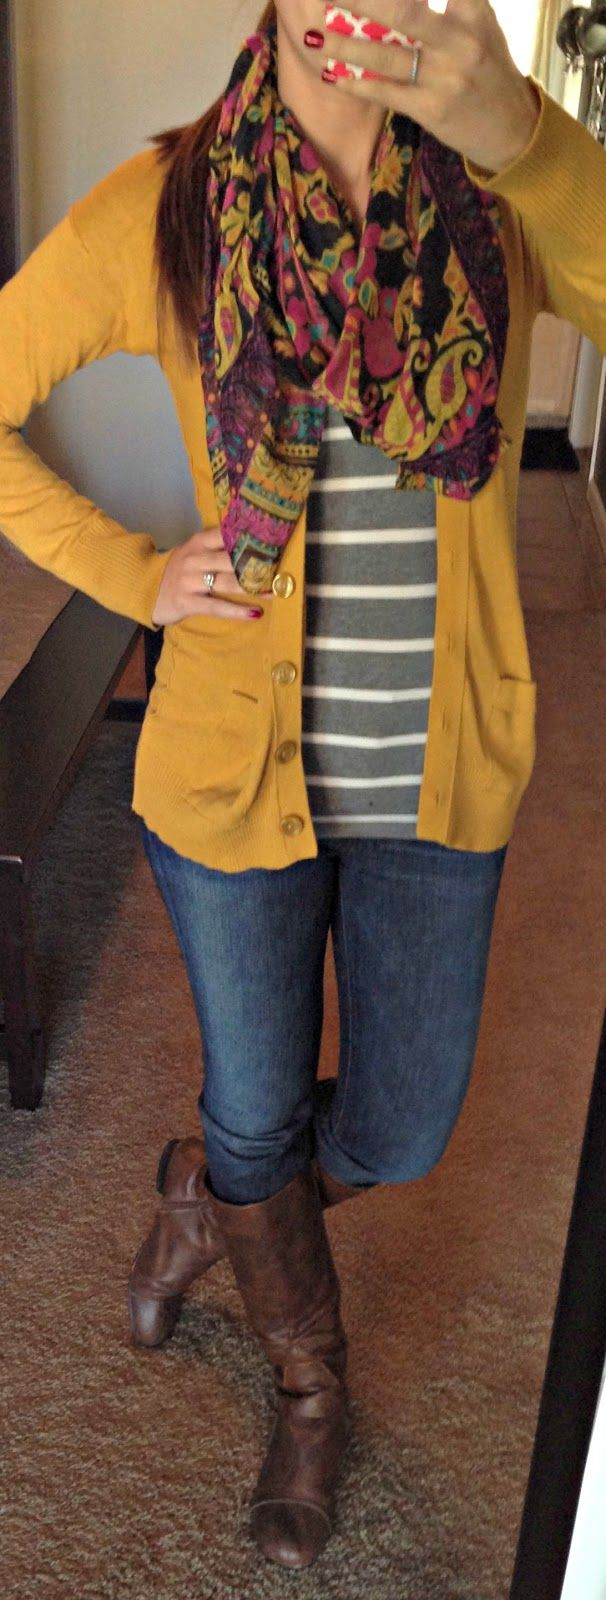 Mustard cardigan with gray striped sweater and boots